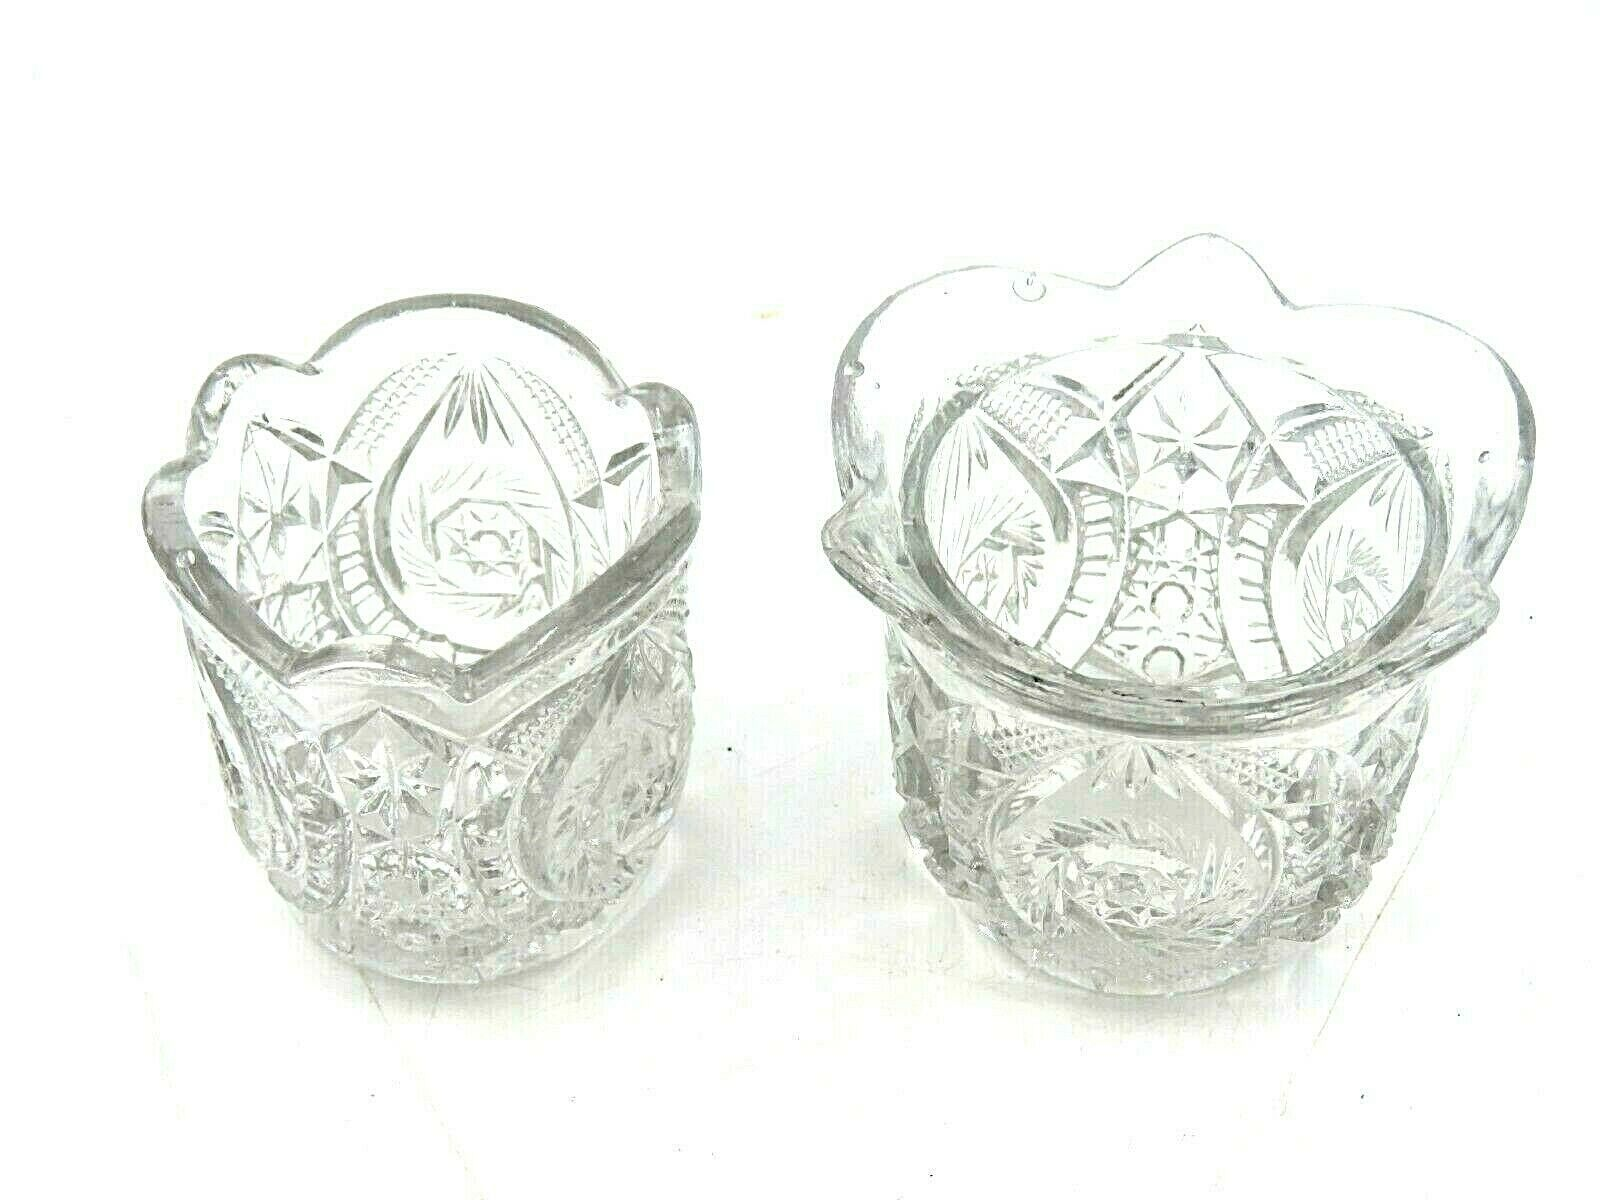 Vintage 1930s 1940s Imperial Glass Small Condiment Serving Jars - $19.75